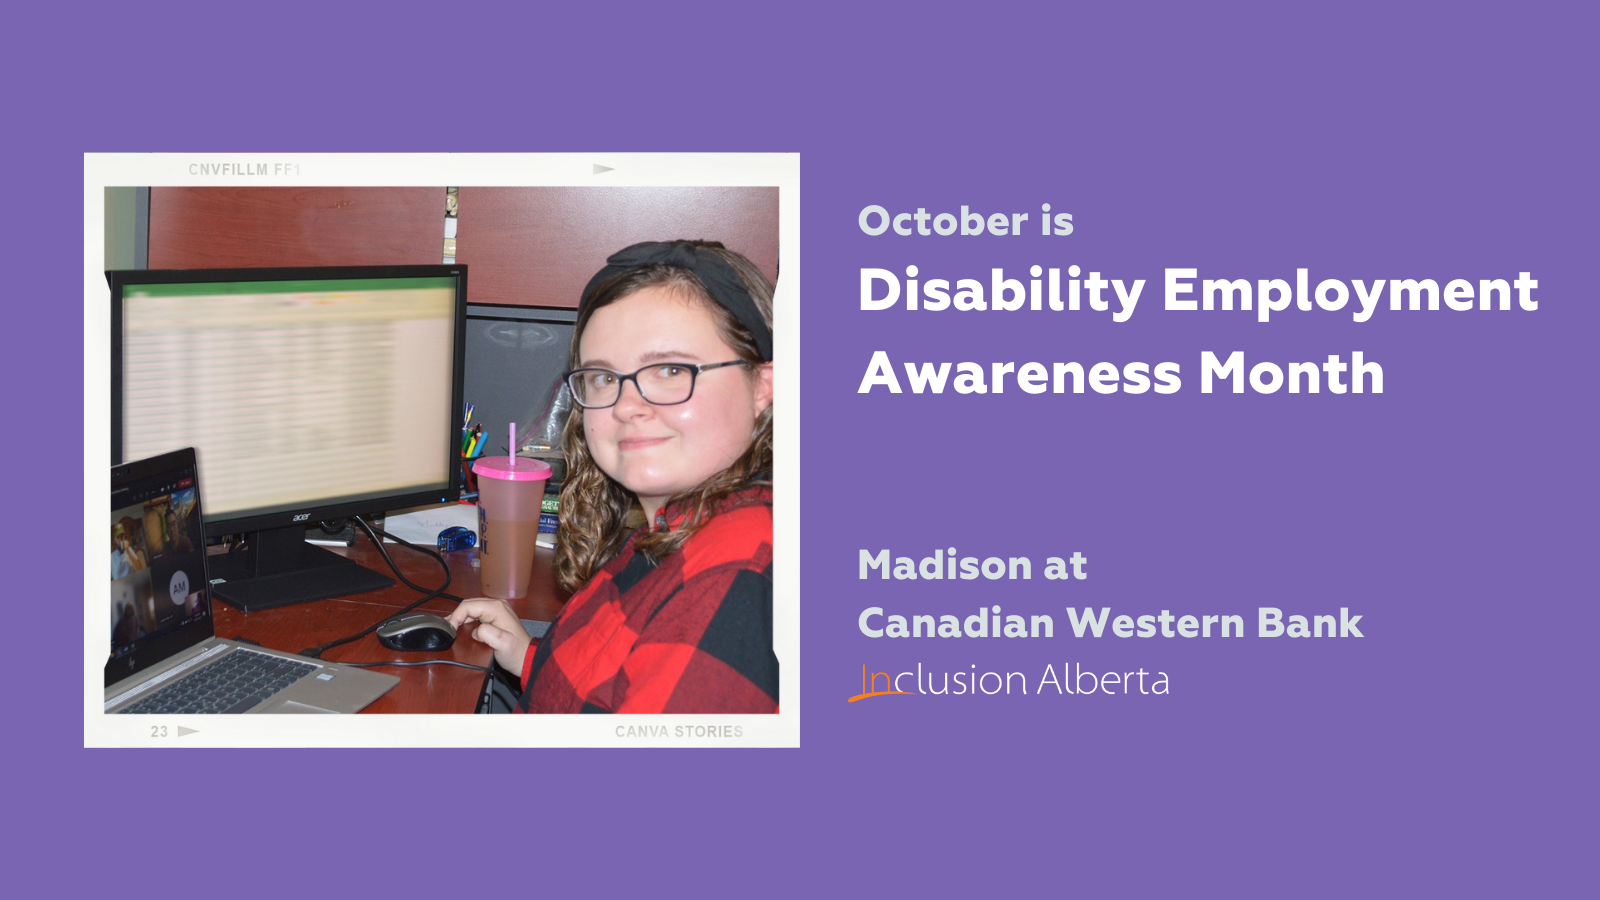 October is Disability Employment Awareness Month. Madison at Canadian Western Bank. Madison poses at her home workstation in front of computer screens, one of which shows she is on a Zoom call with colleagues.